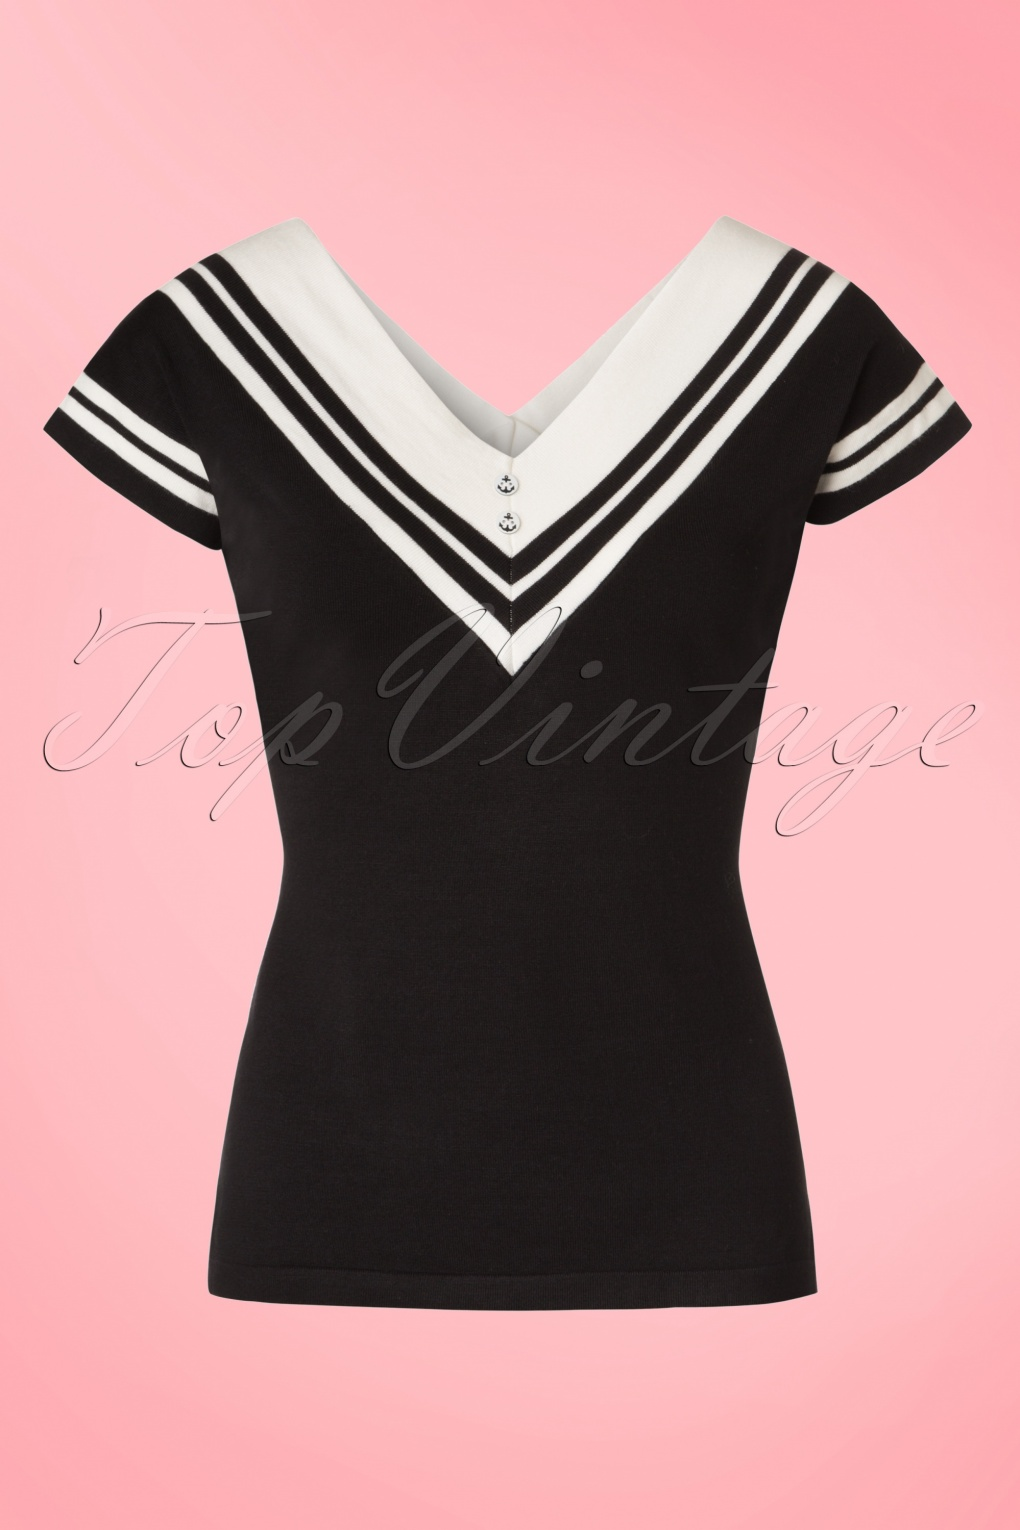 1940s Blouses, Shirts and Tops Fashion History 50s Cedar Top in Black £34.70 AT vintagedancer.com